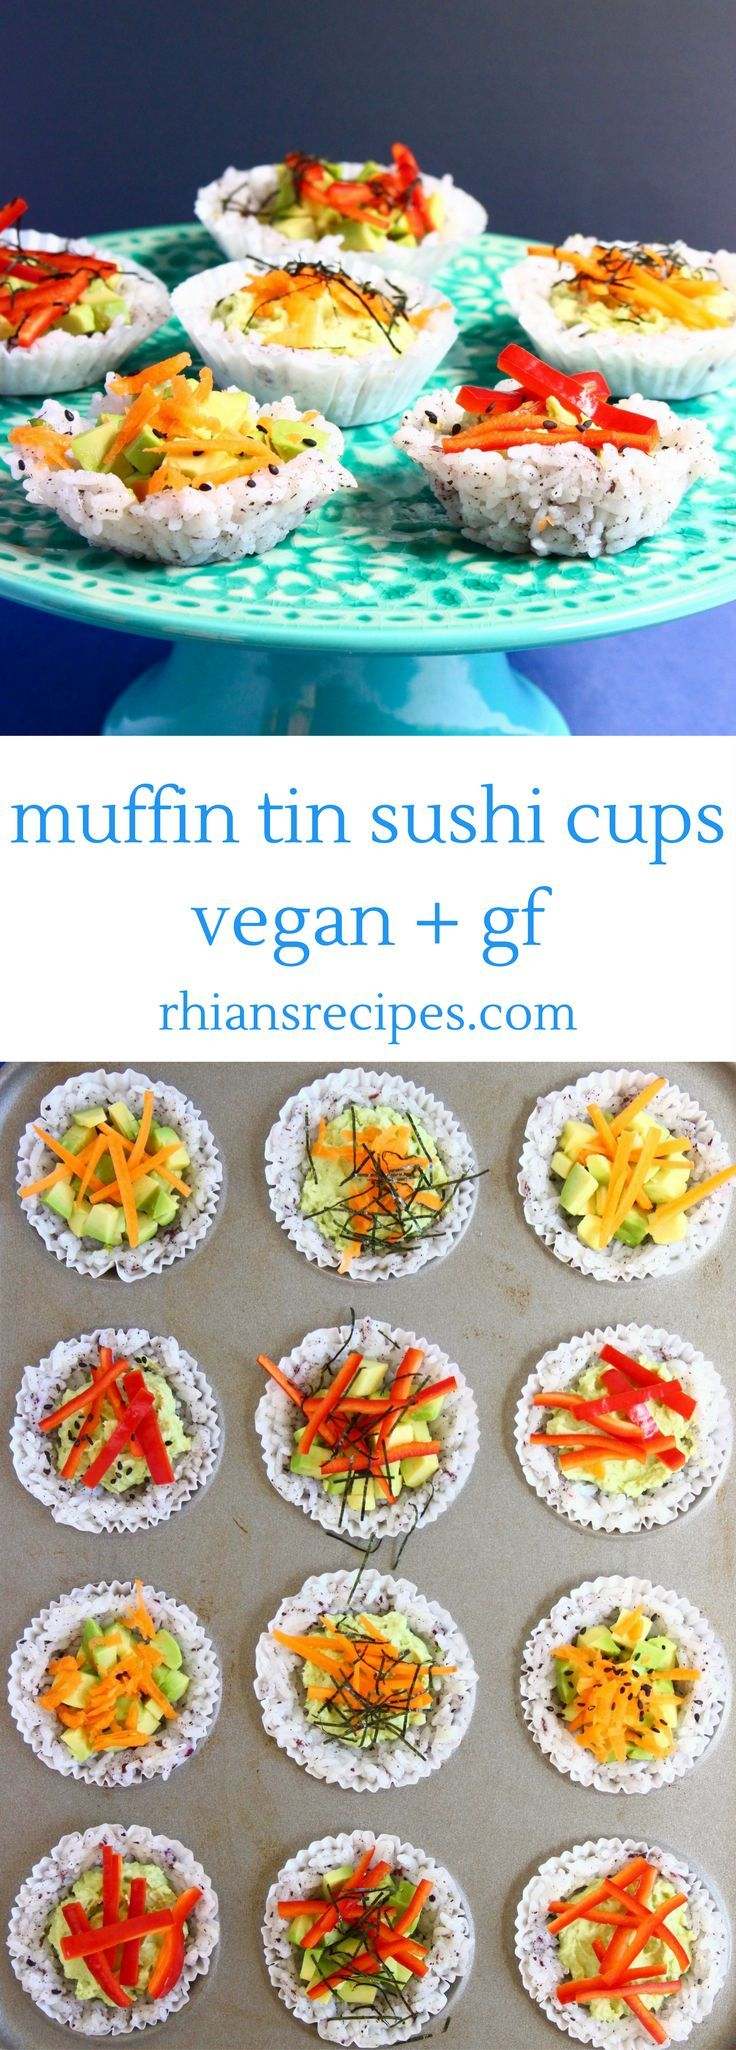 These Muffin Tin Sushi Cups are super easy to make, so adorable and full of healthy goodness! Filled with creamy avocado and the most delicious edamame paste. Vegan and gluten-free.